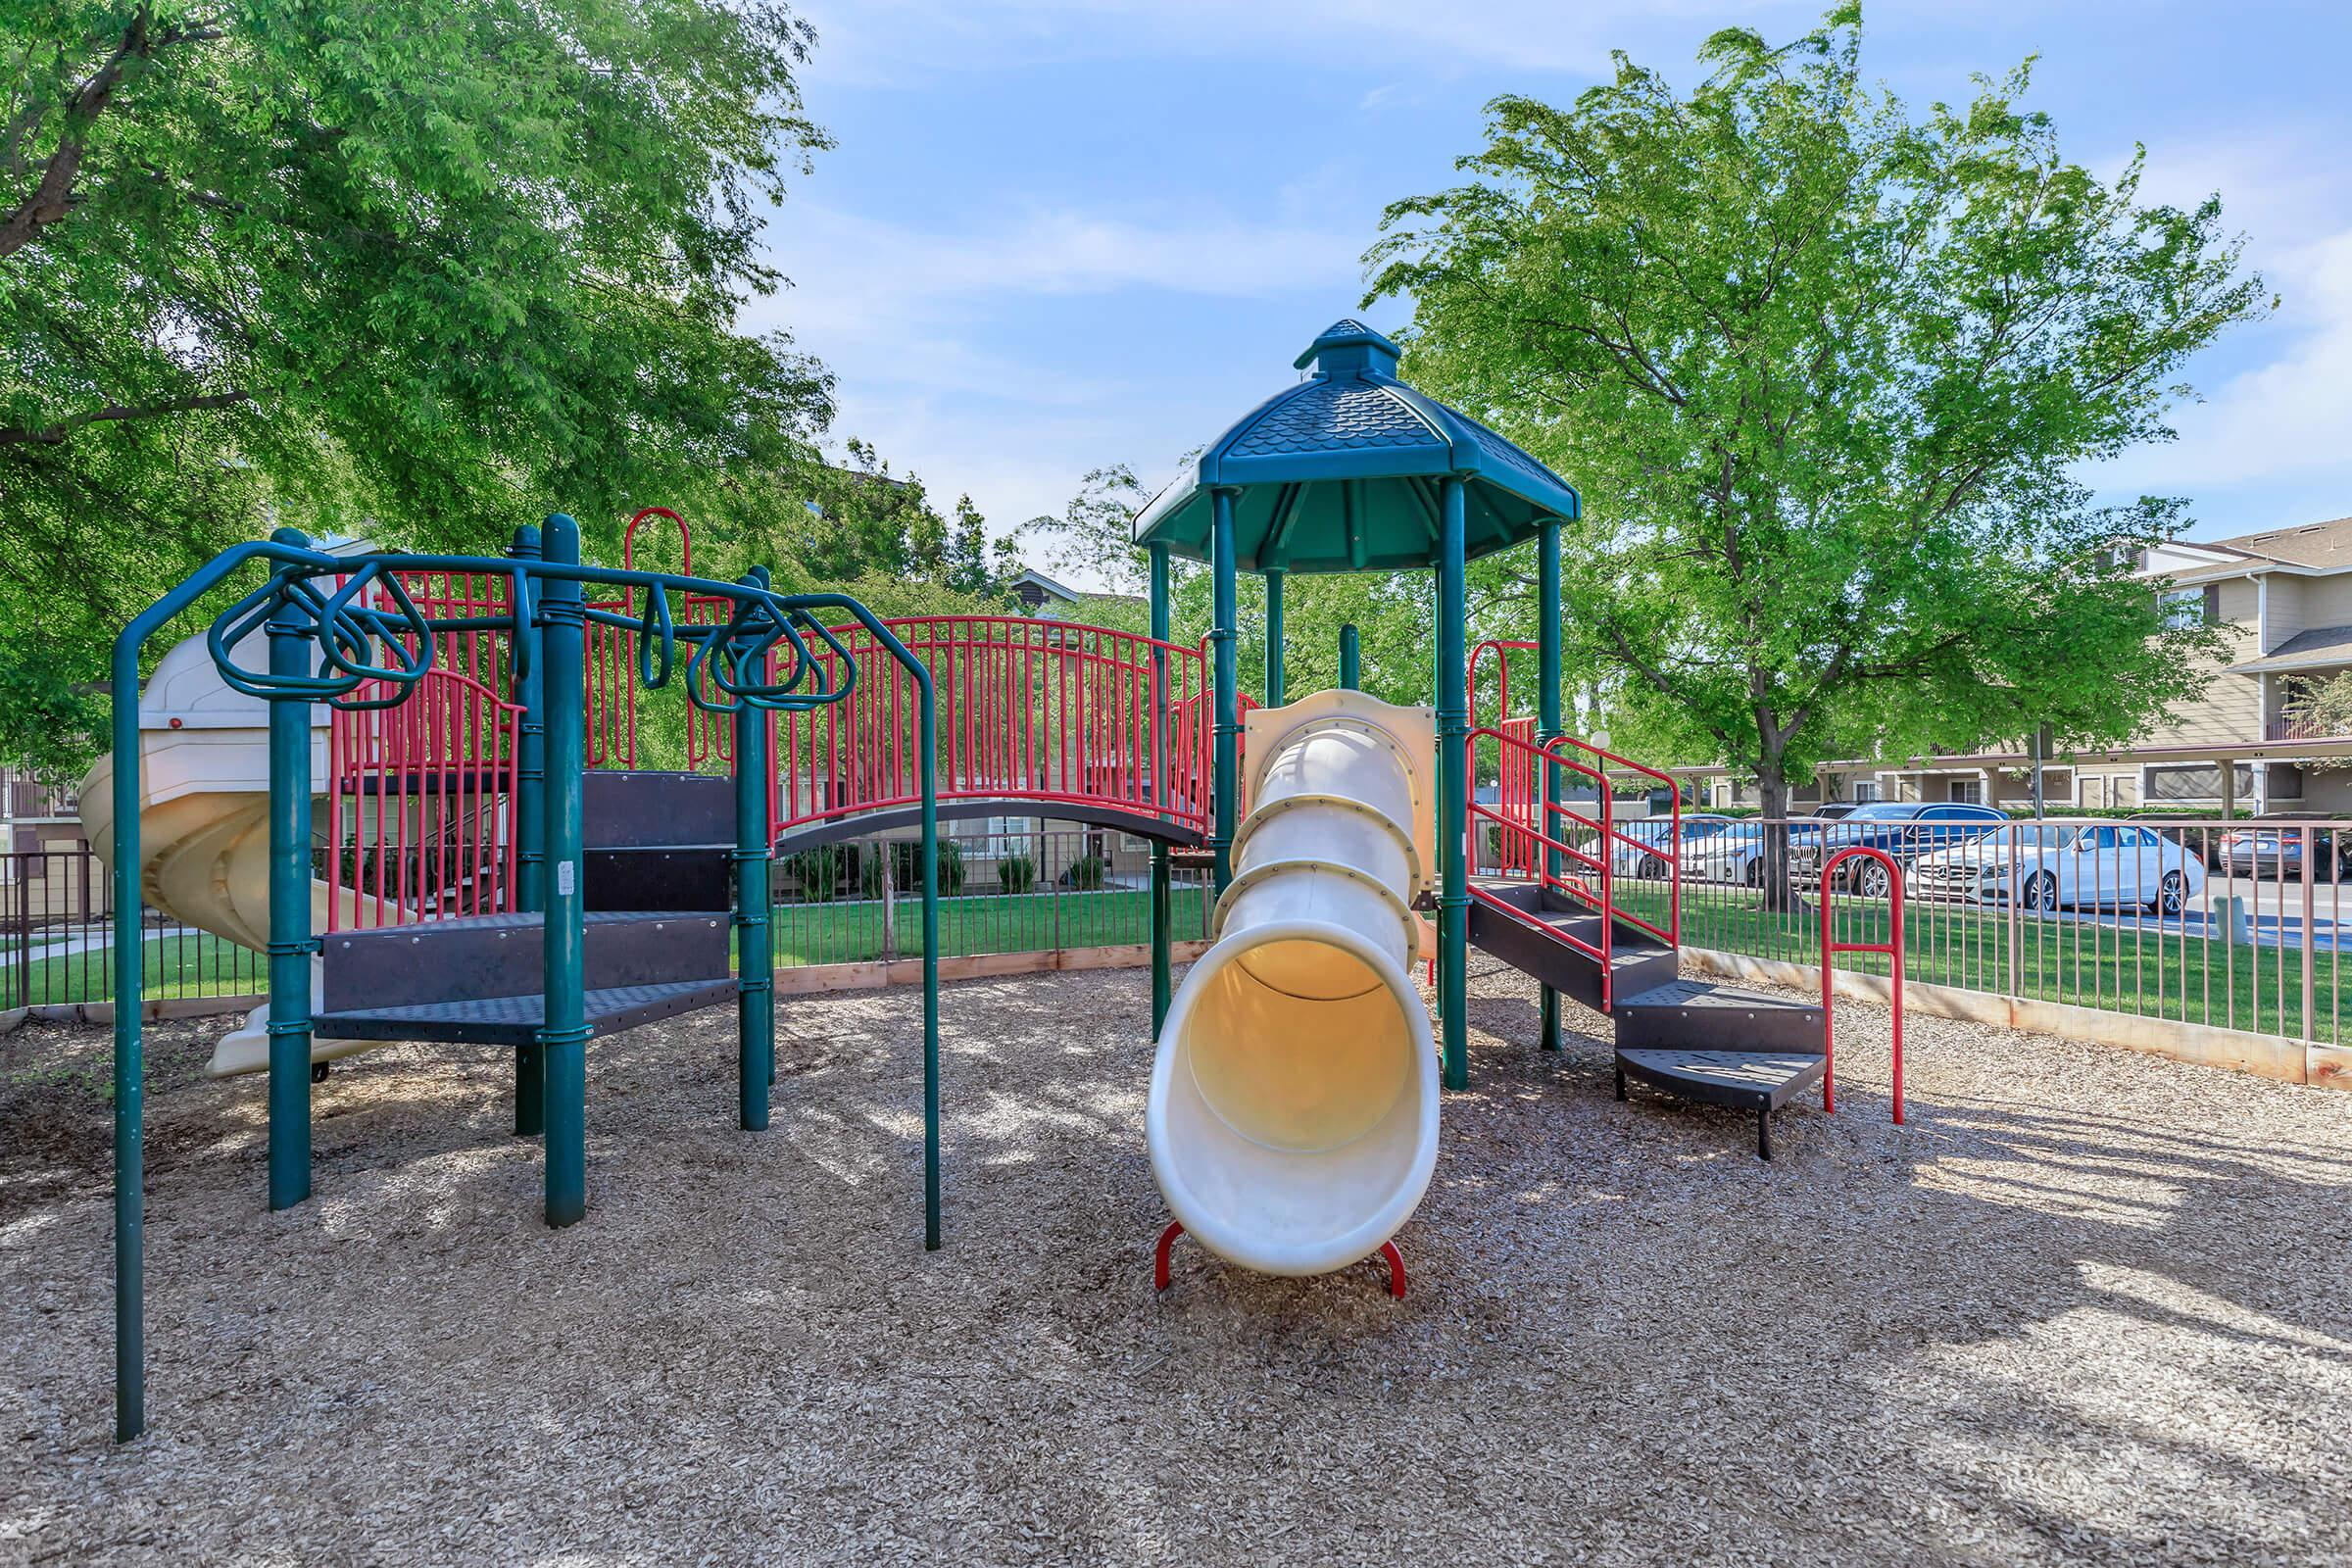 a playground in front of a fence